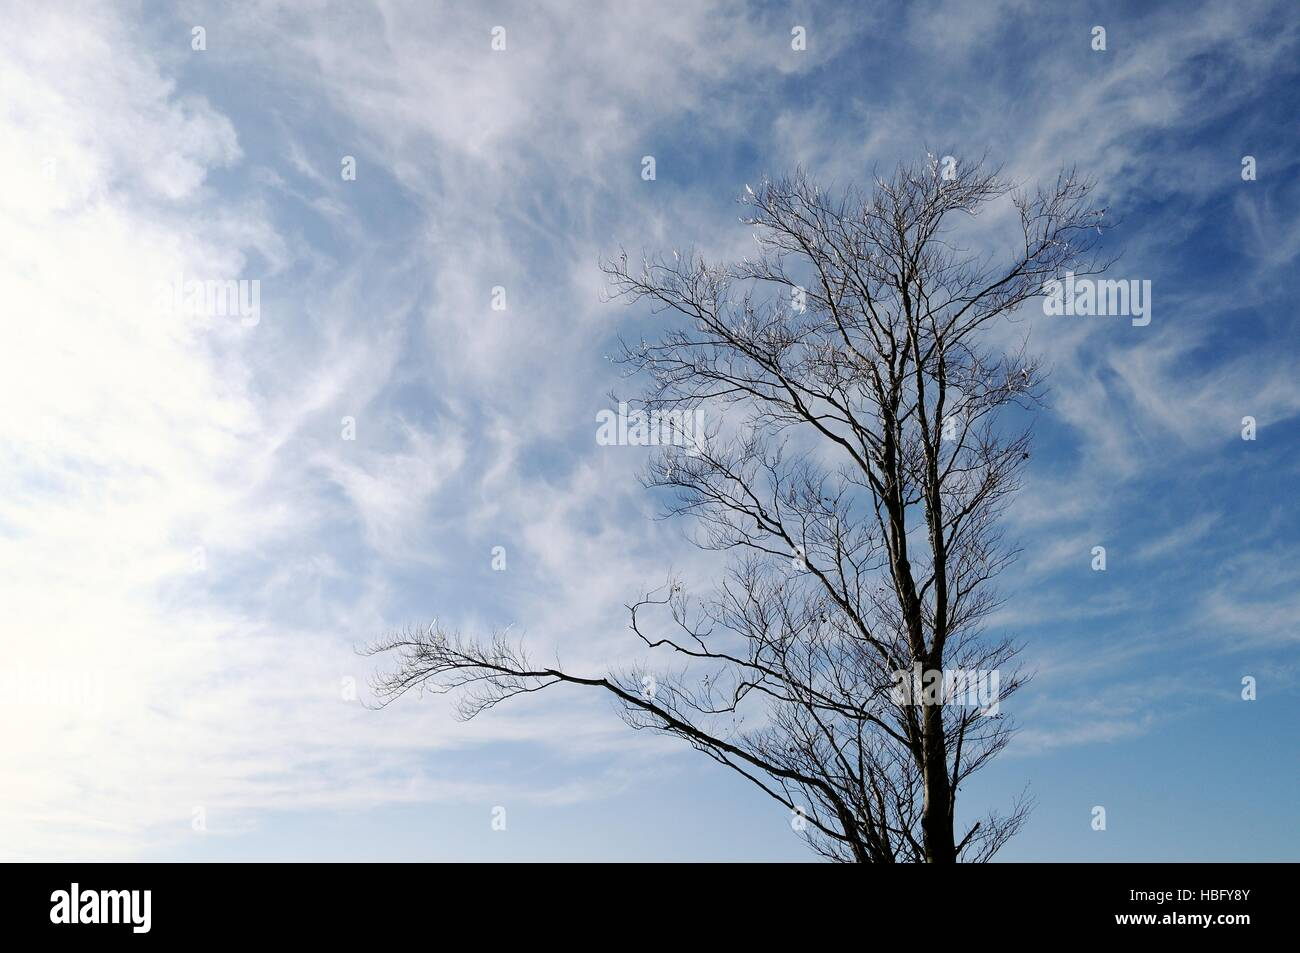 the tree of the sky and clouds - Stock Image